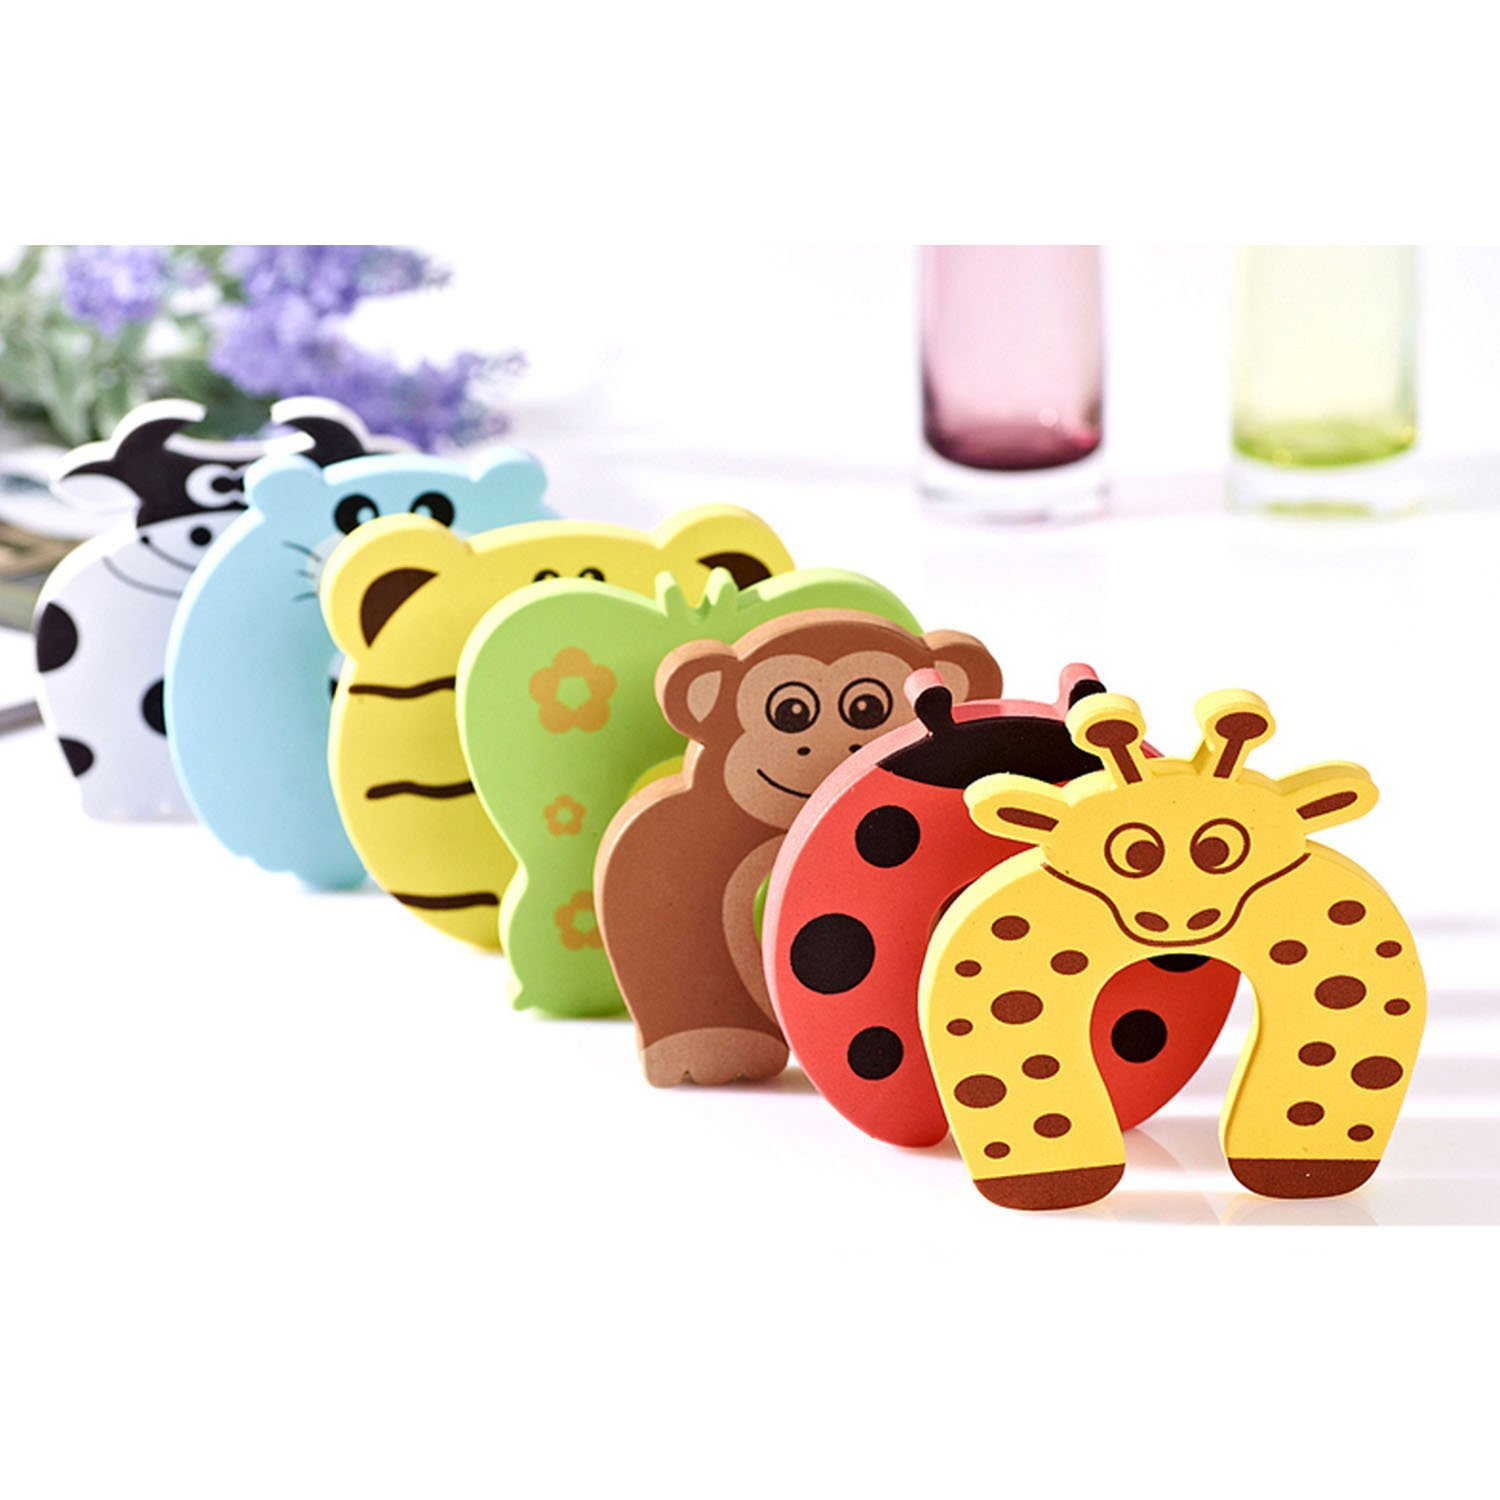 Baby Safety No Finger Pinch Guard, Foam Door Stopper Cushion, eBerry Cartoon Animal Curve Door Stop Cushiony for Children Kids Finger Hand Safety, 7 PCS Set